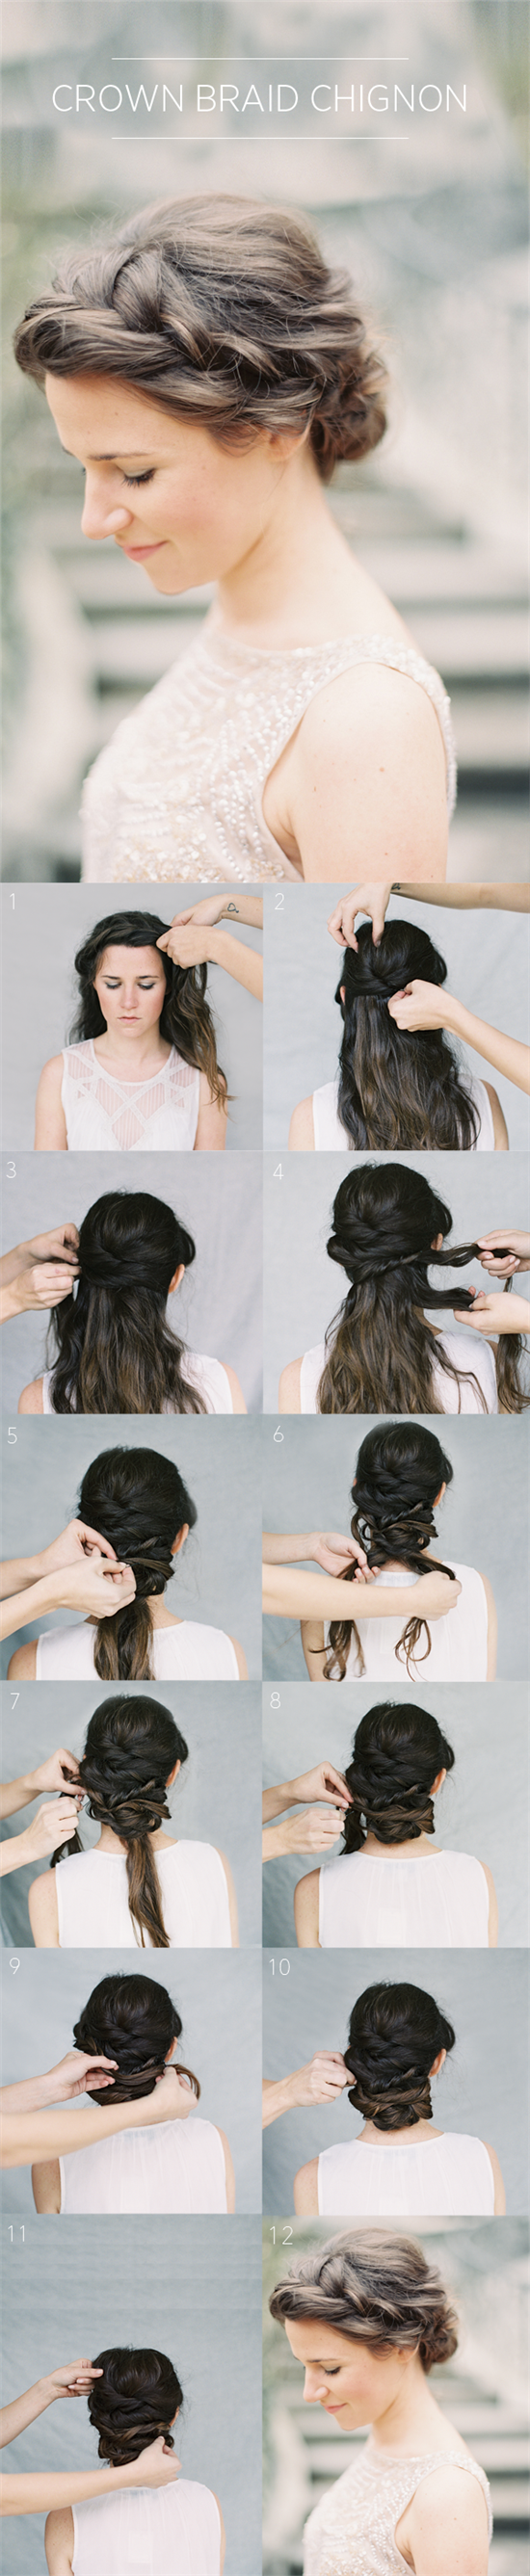 Three Elegant Updo Hairstyles with Clip in Extensions - image #1000757 ...